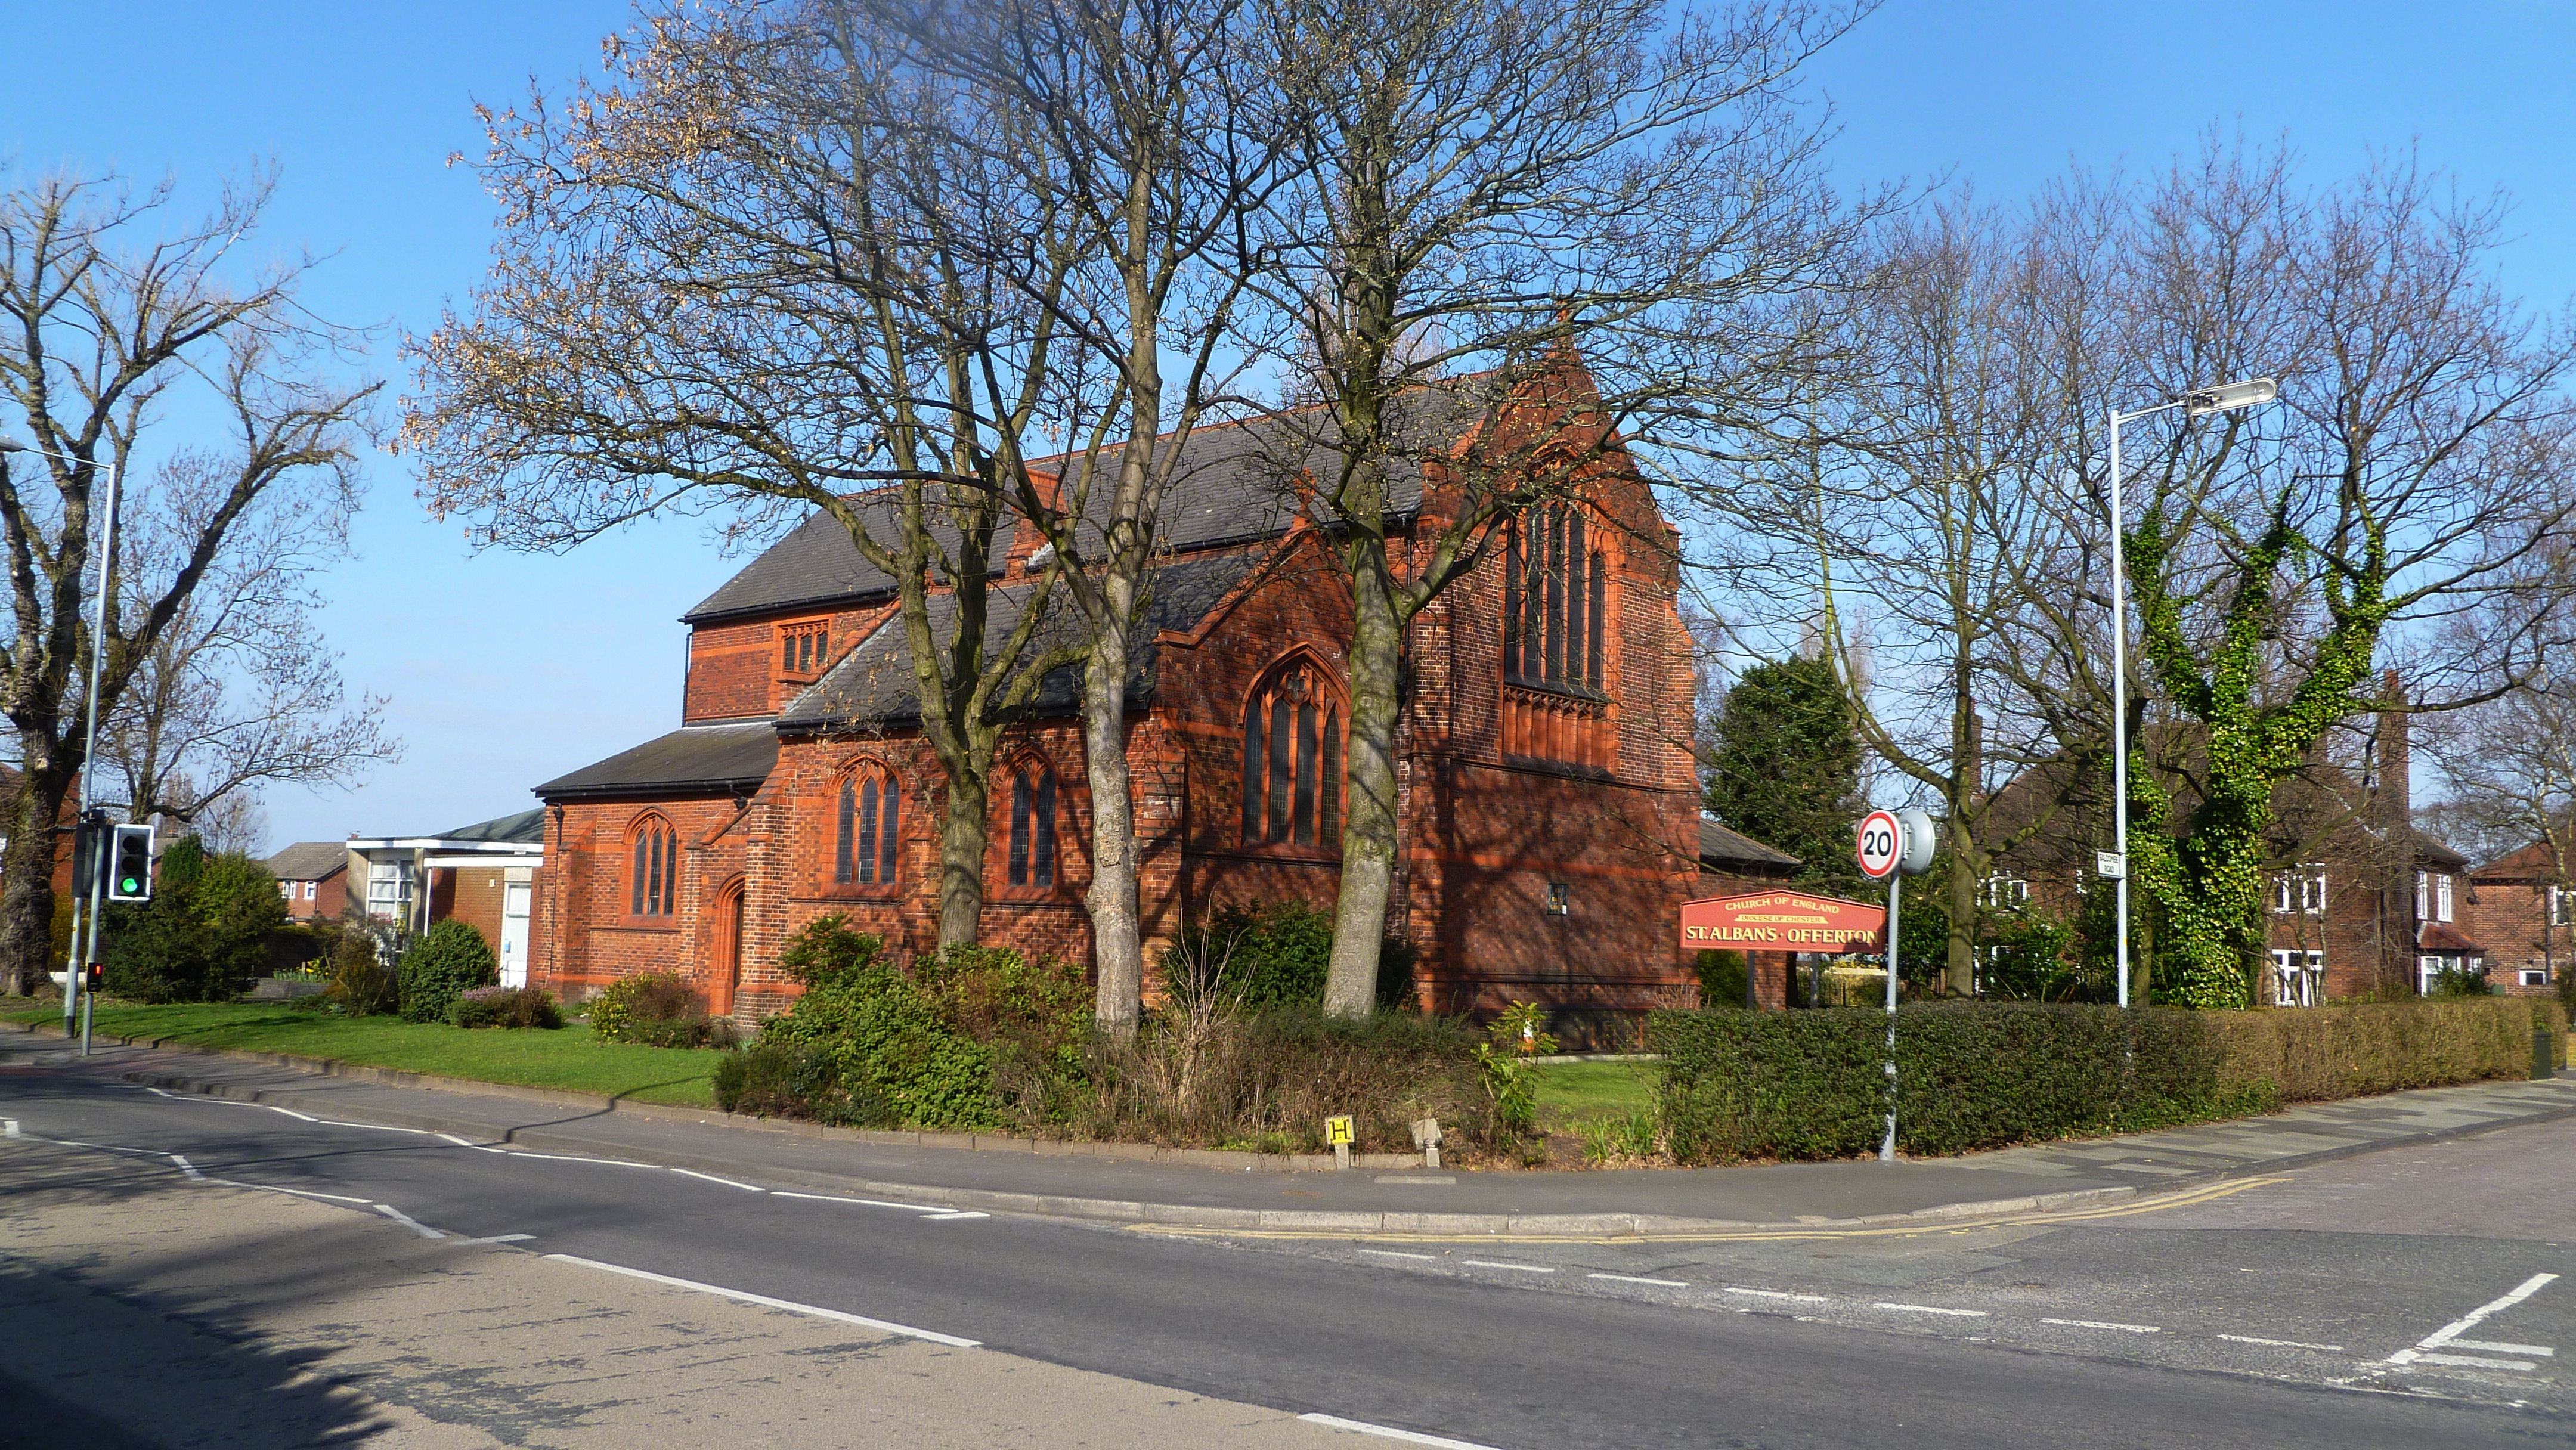 OFFERTON, St Alban, Greater Manchester (Allen Greave)